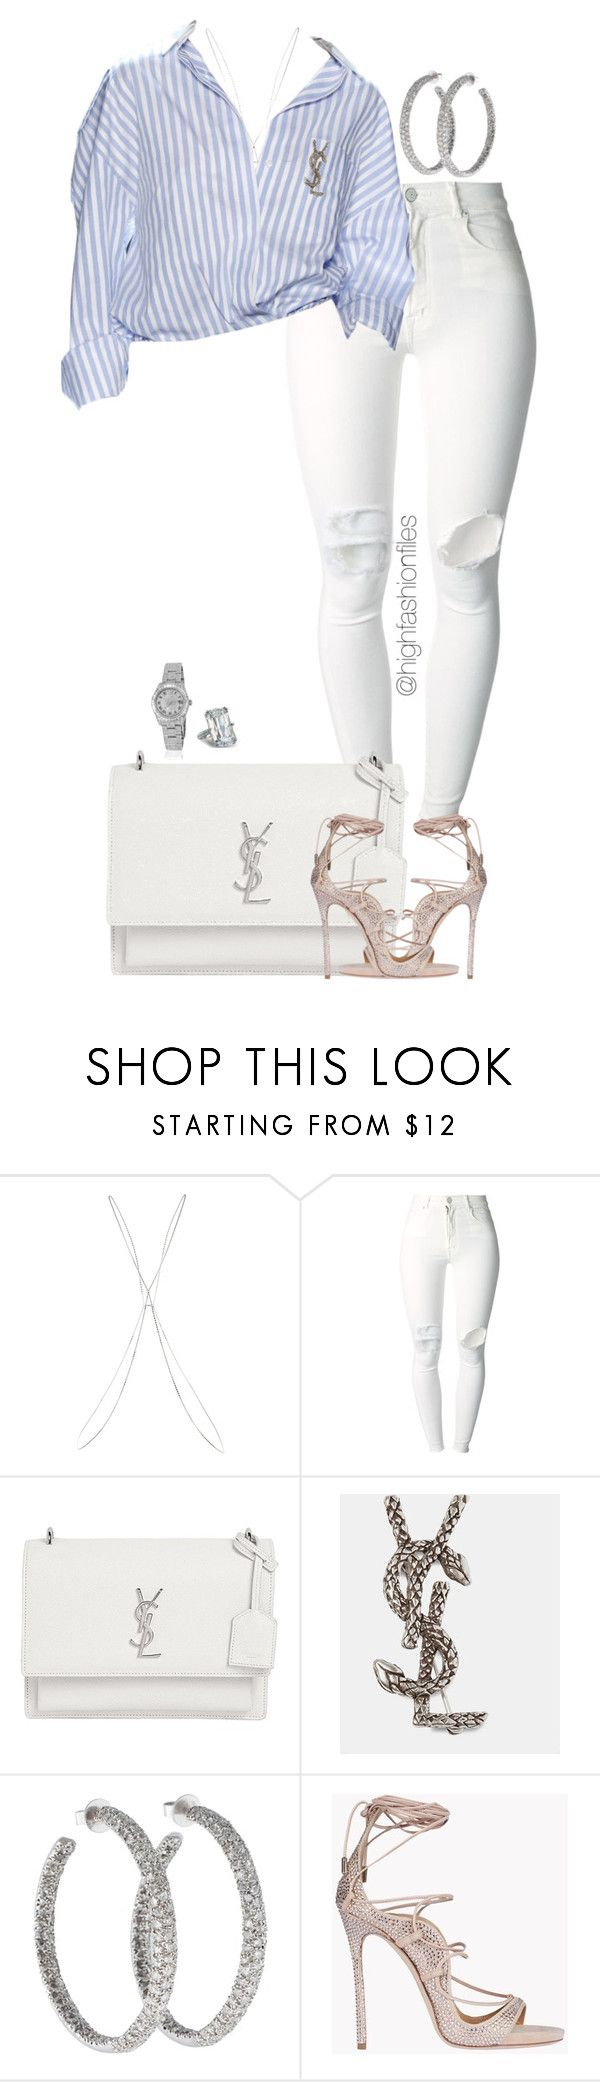 """Untitled #2732"" by highfashionfiles ❤ liked on Polyvore featuring Topshop, (+) PEOPLE, Yves Saint Laurent, Lorraine Schwartz, Dsquared2, Rolex and Chopard"